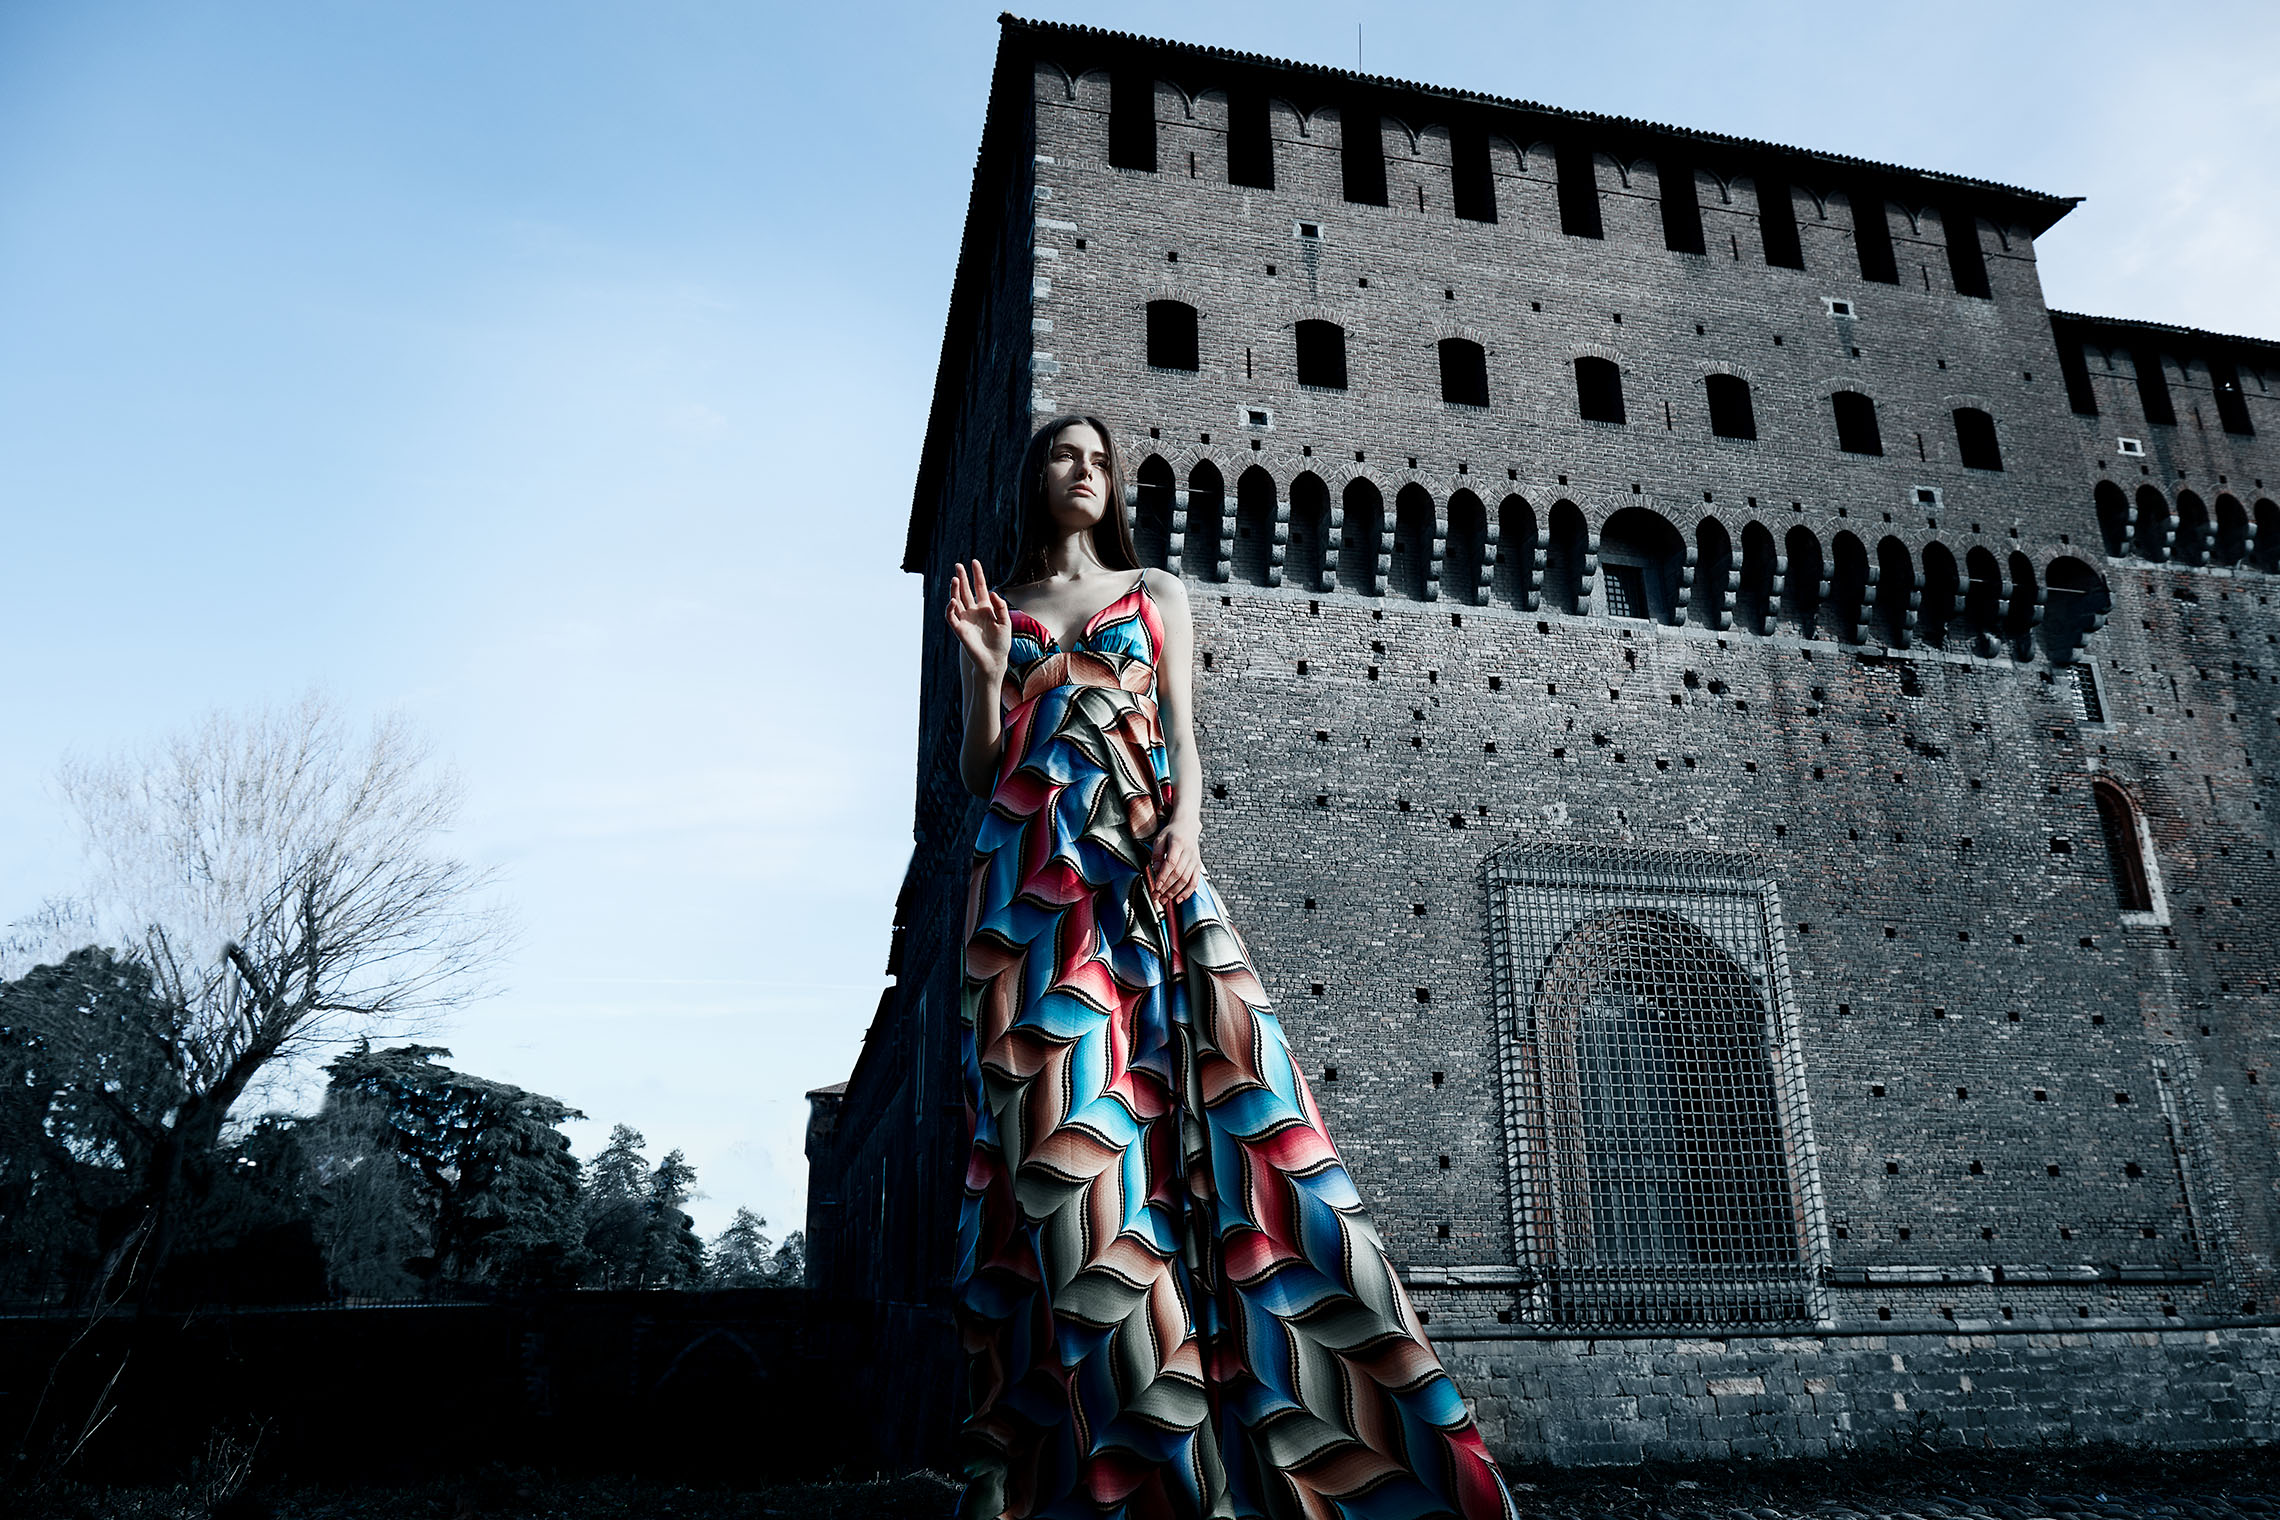 elegant woman and castle - dramatic fashion story - fashion advertising campaign photographed in Milan, Italy